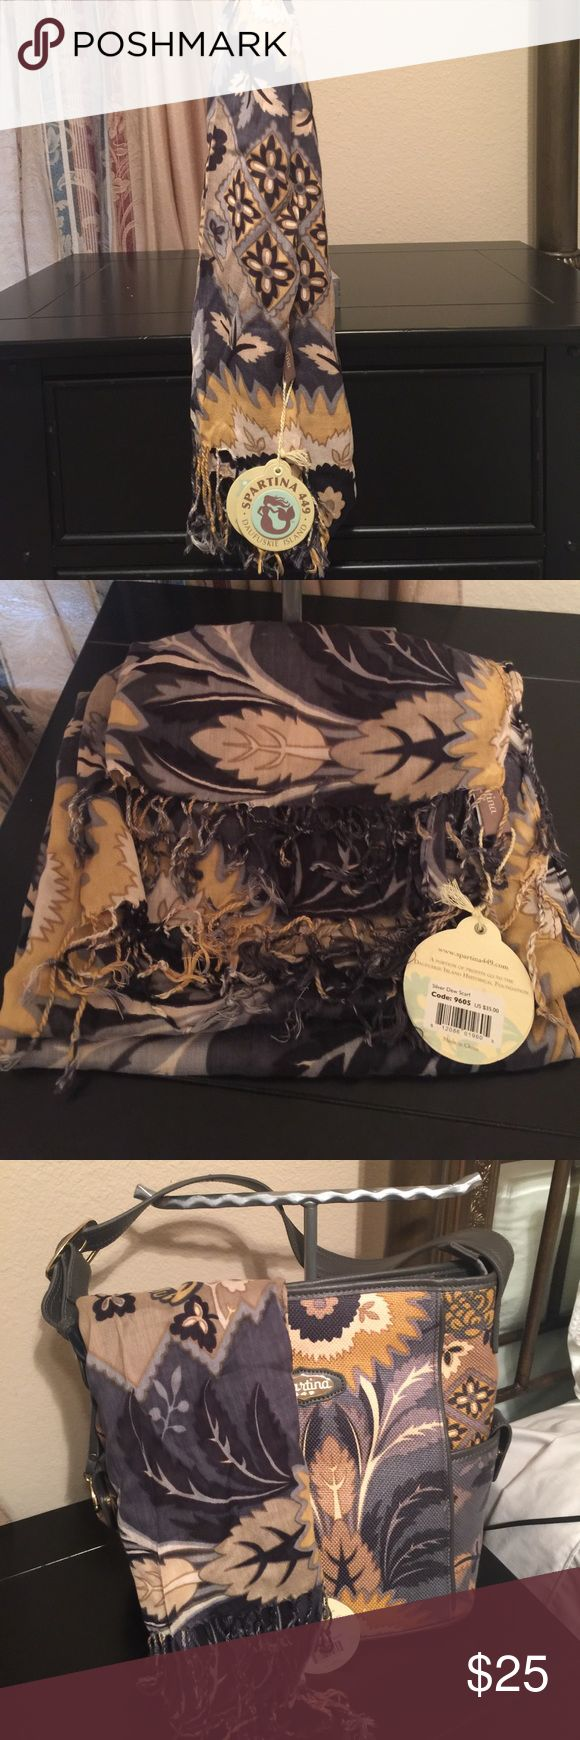 Spartina 449 scarf Silver Dew pattern Brand new with tags! This is a large scarf in 100% viscose material. Bundle with my Spartina bags in this pattern and save 20% Spartina 449 Accessories Scarves & Wraps